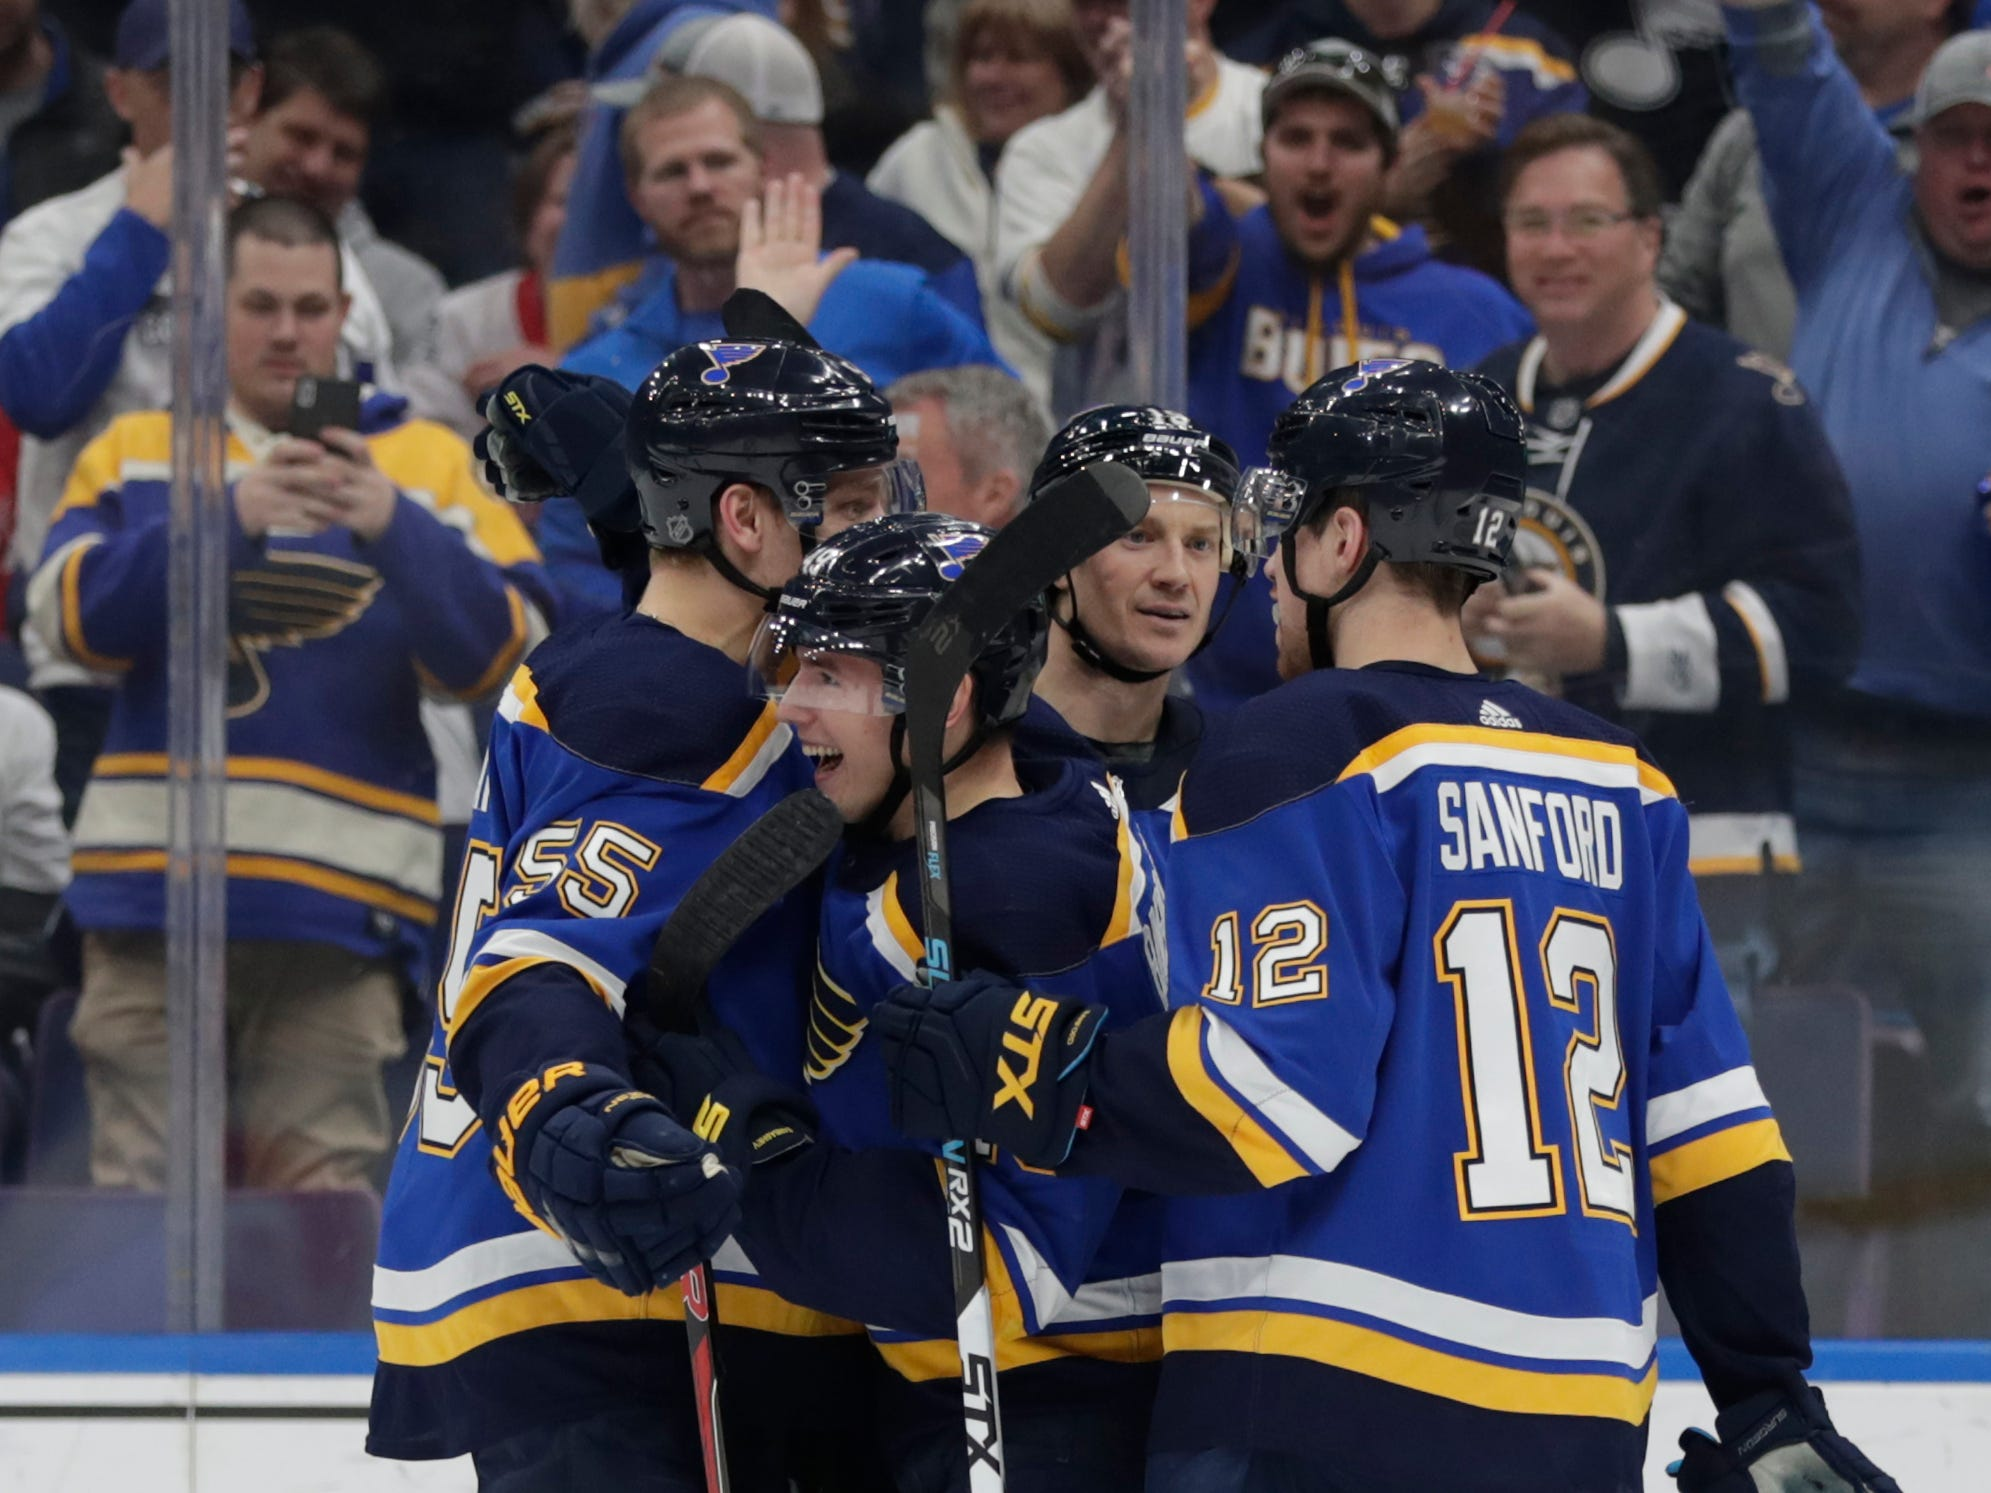 St. Louis' Ivan Barbashev, center, celebrates with teammates Colton Parayko (55), Zach Sanford (12) and Jay Bouwmeester after scoring a goal.